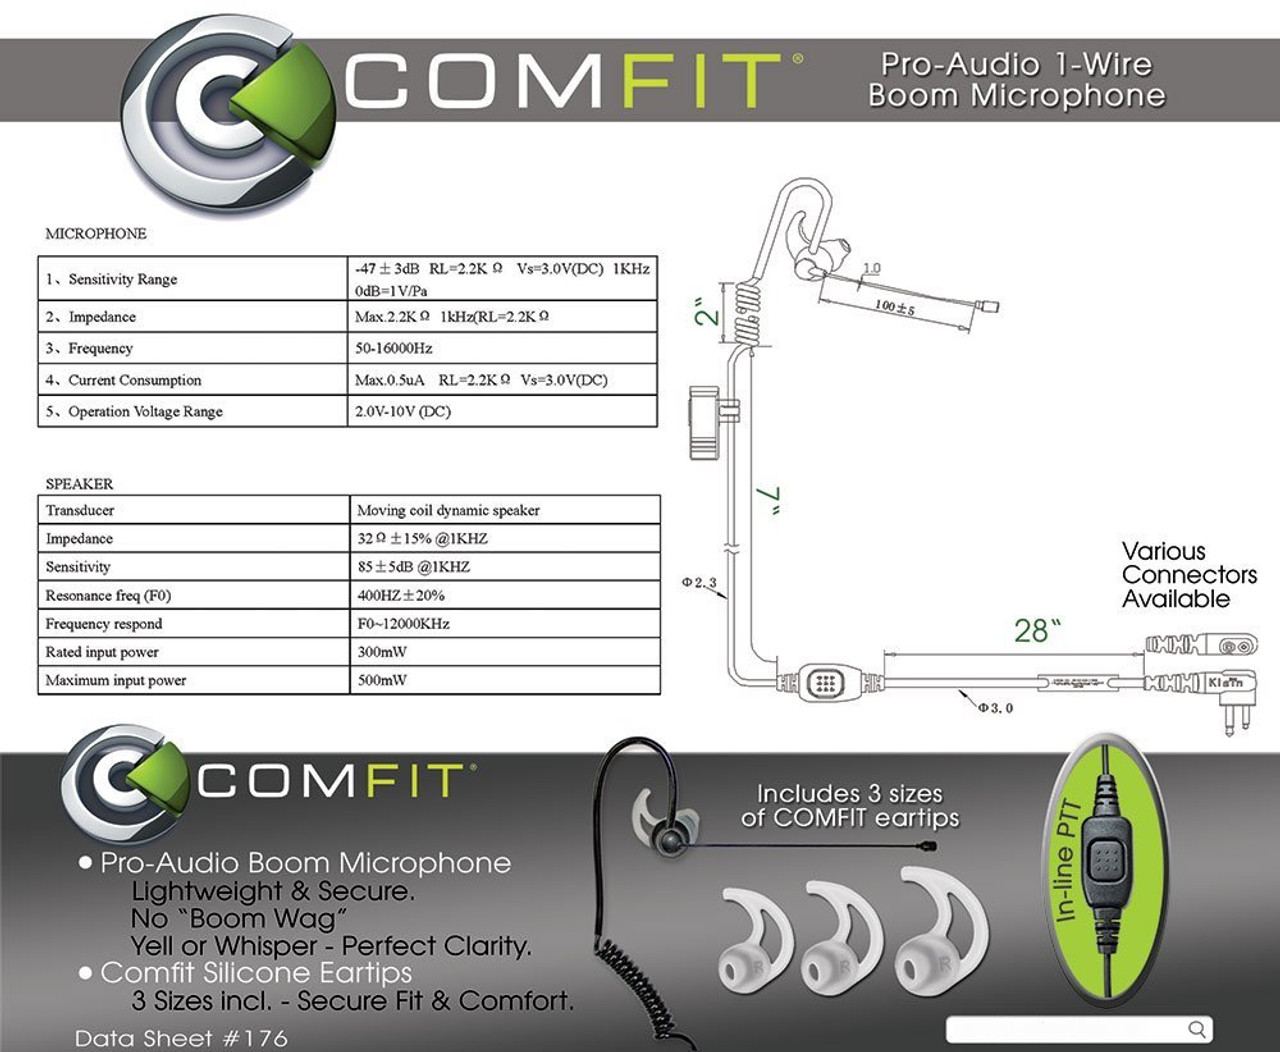 COMFIT Pro-Audio 1-Wire Boom Microphone